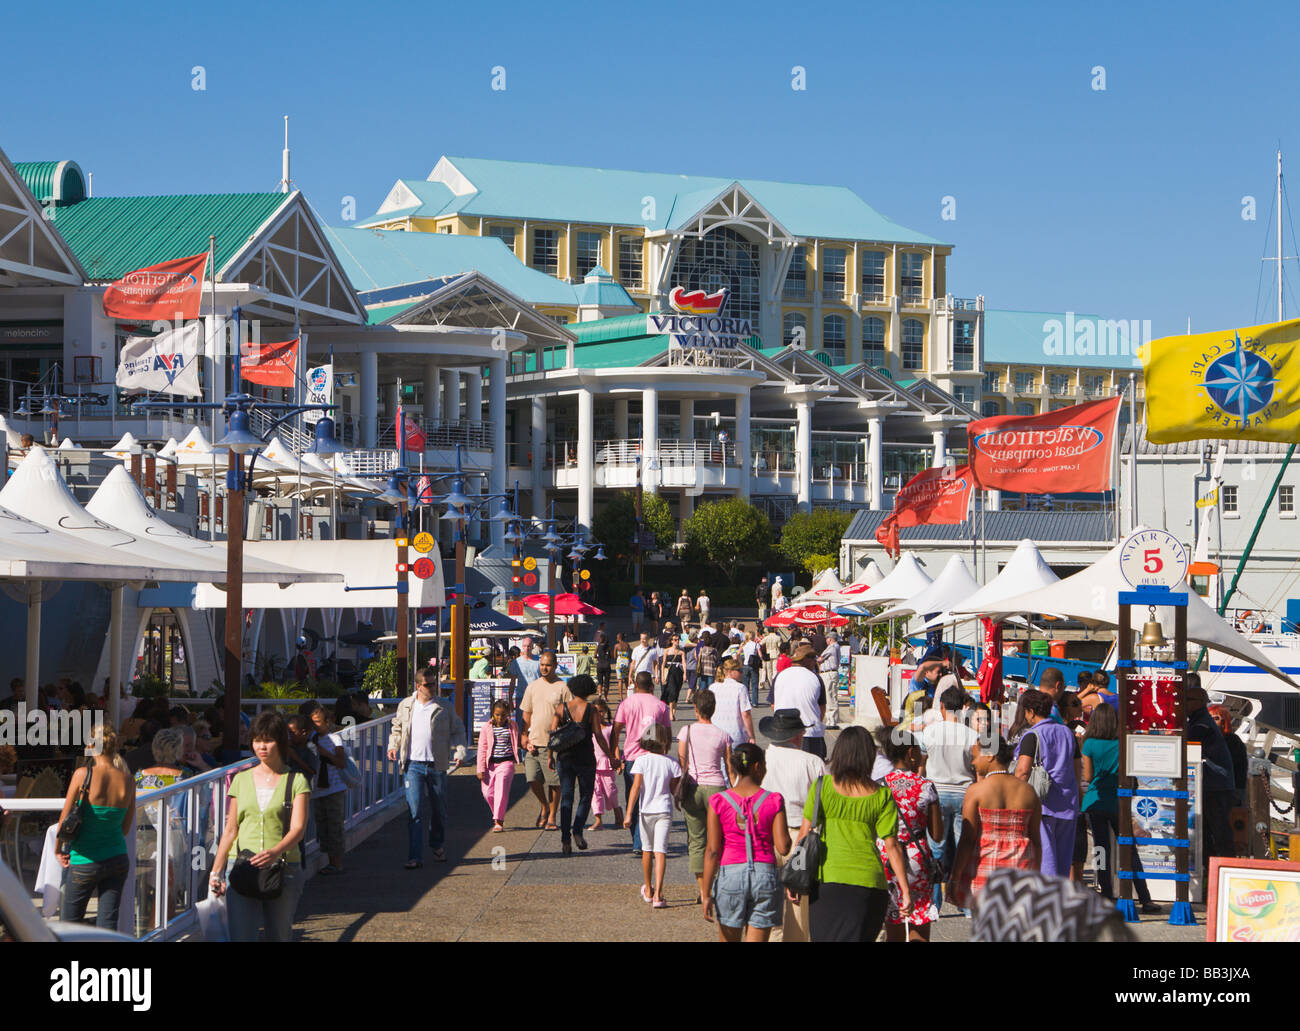 'V&A waterfront', 'Cape Town', 'South Africa' - Stock Image